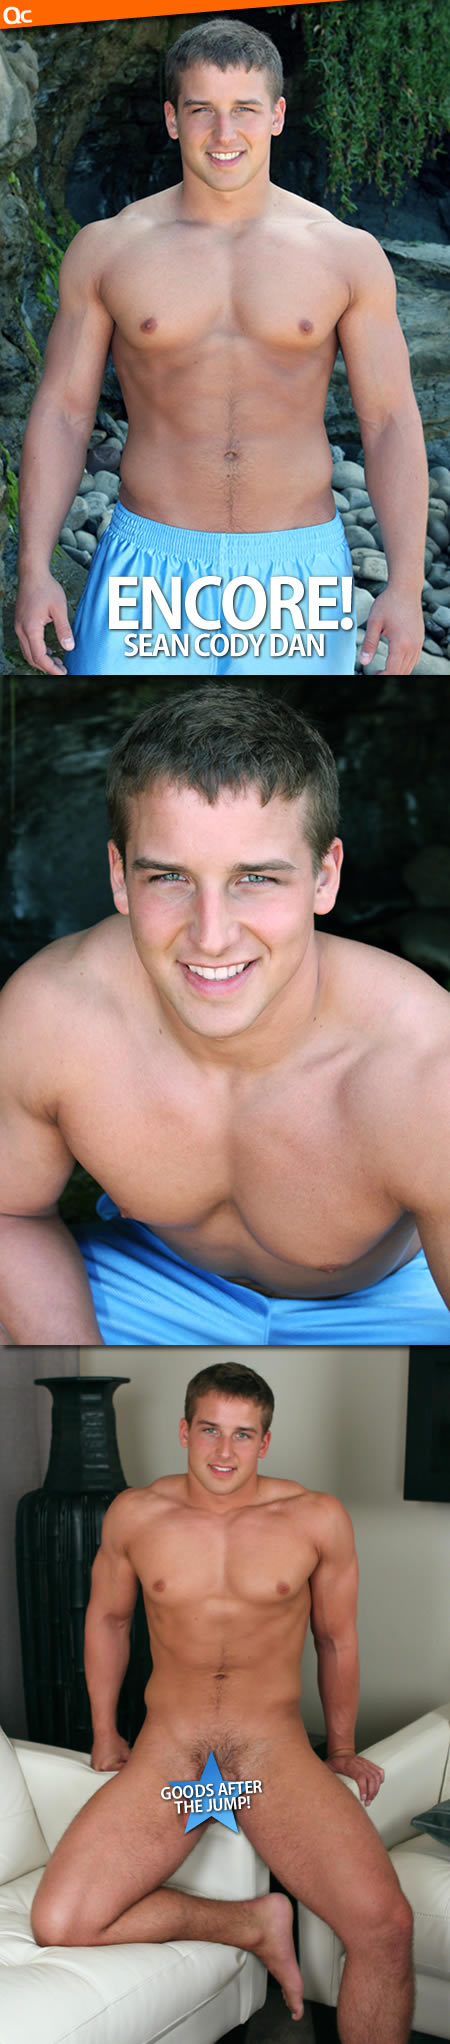 Sean Cody: Dan's Encore!